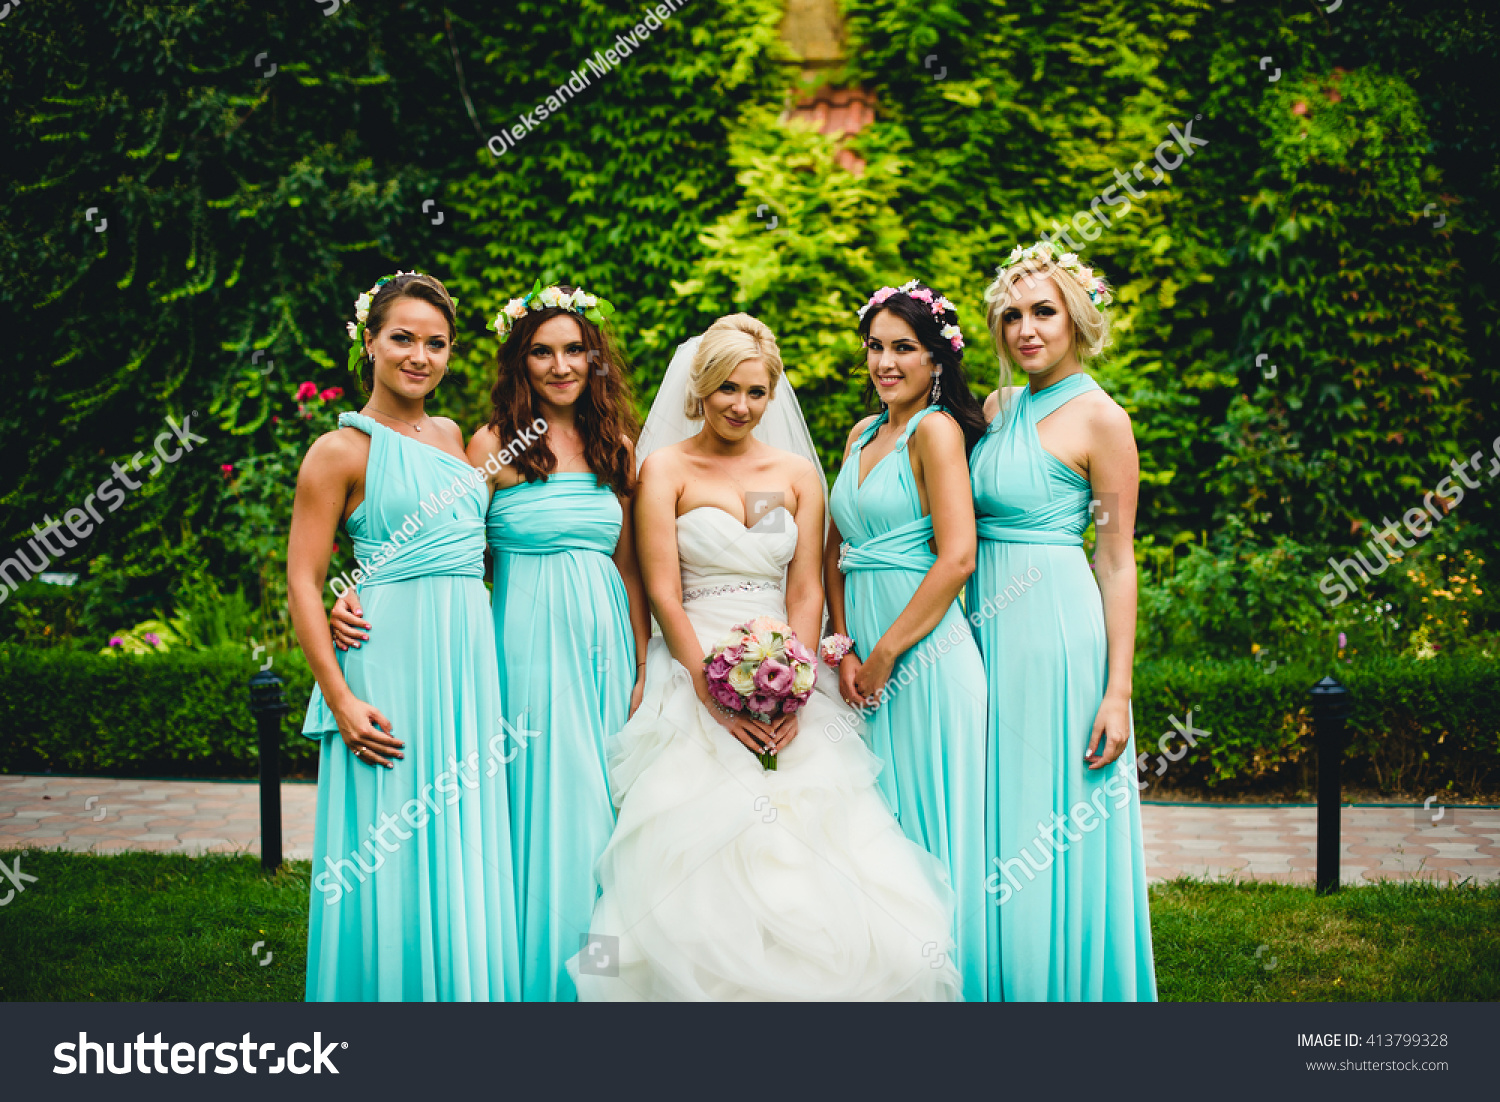 Fancy Dresses Wedding Day Stock Photo (Download Now) 413799328 ...